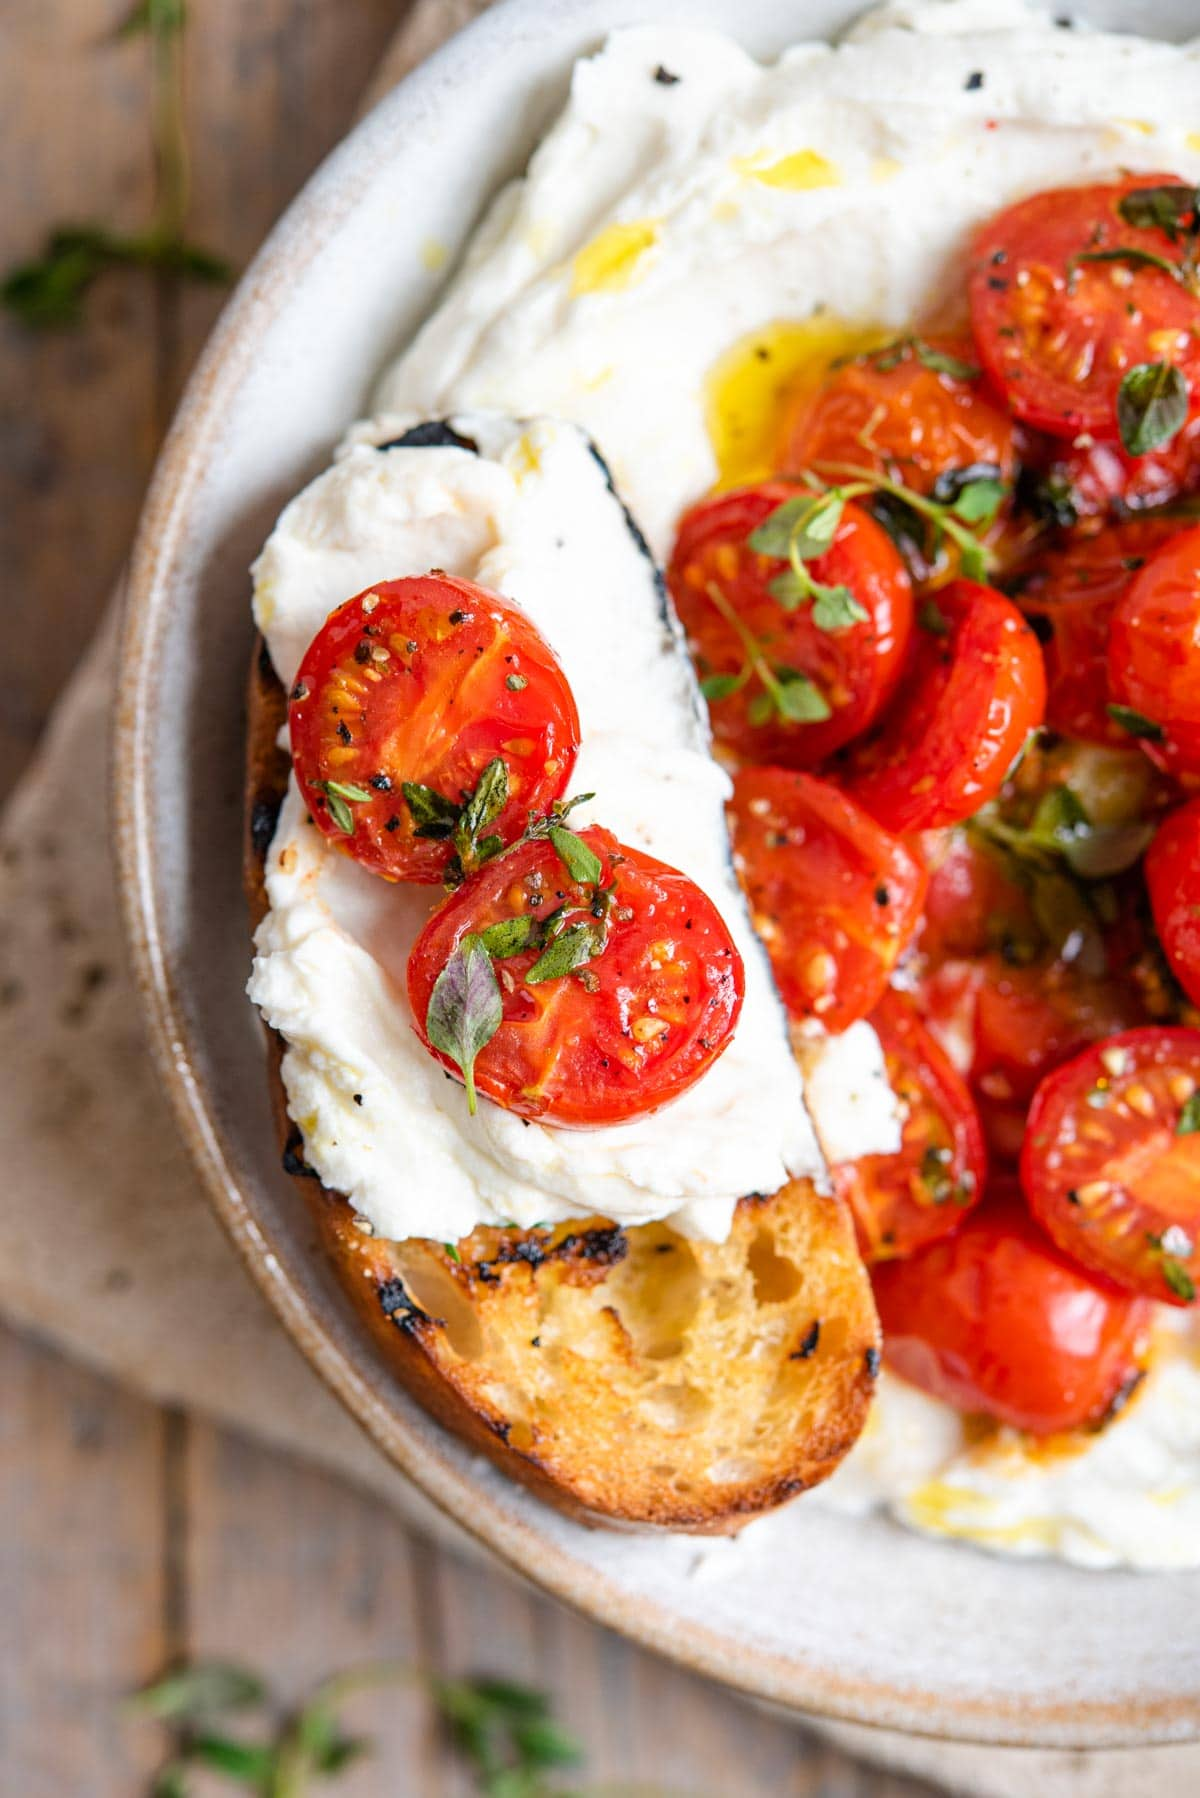 A close up of a slice of ciabatta bread topped with whipped ricotta and tomatoes